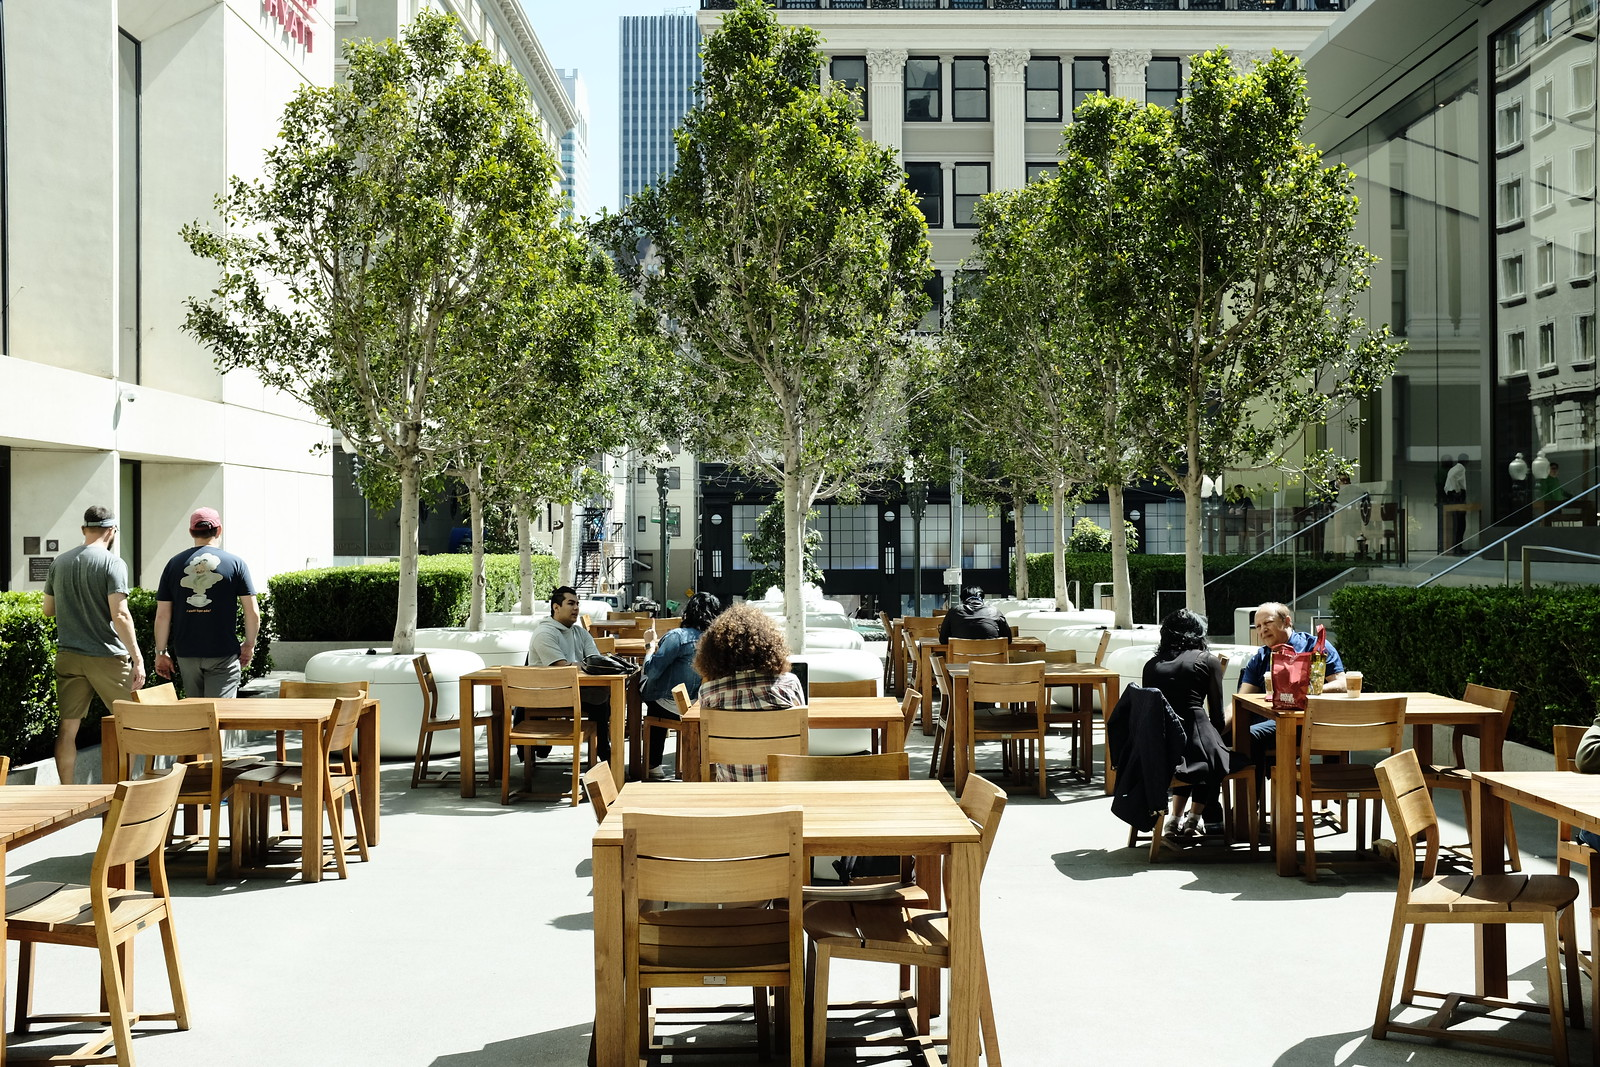 Apple Union Square in San Francisco -2017